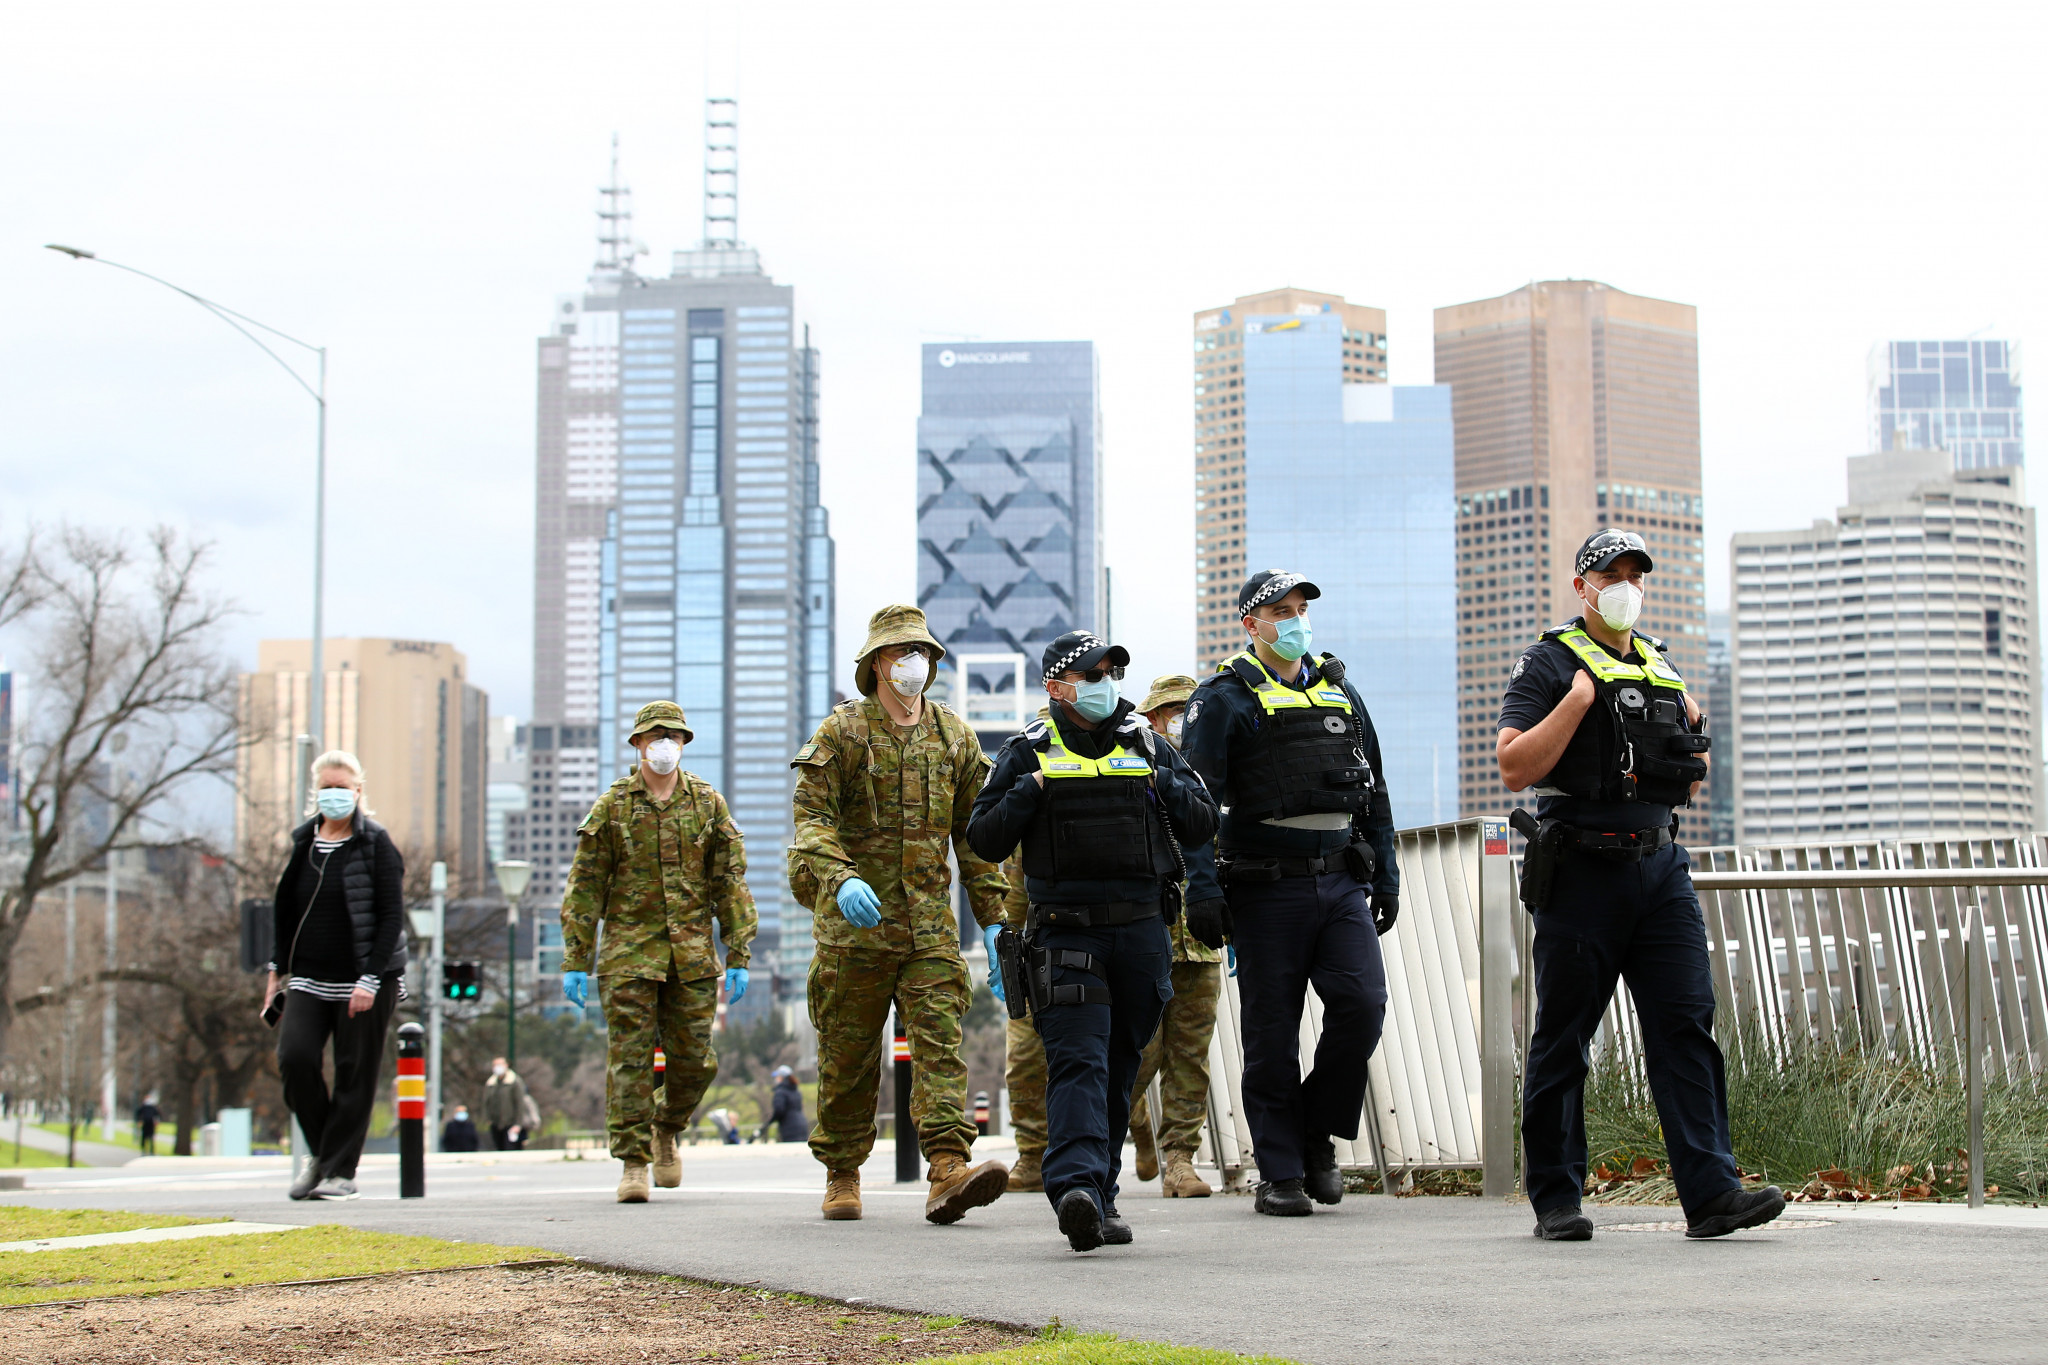 Melbourne only recently exited a four-month lockdown ©Getty Images